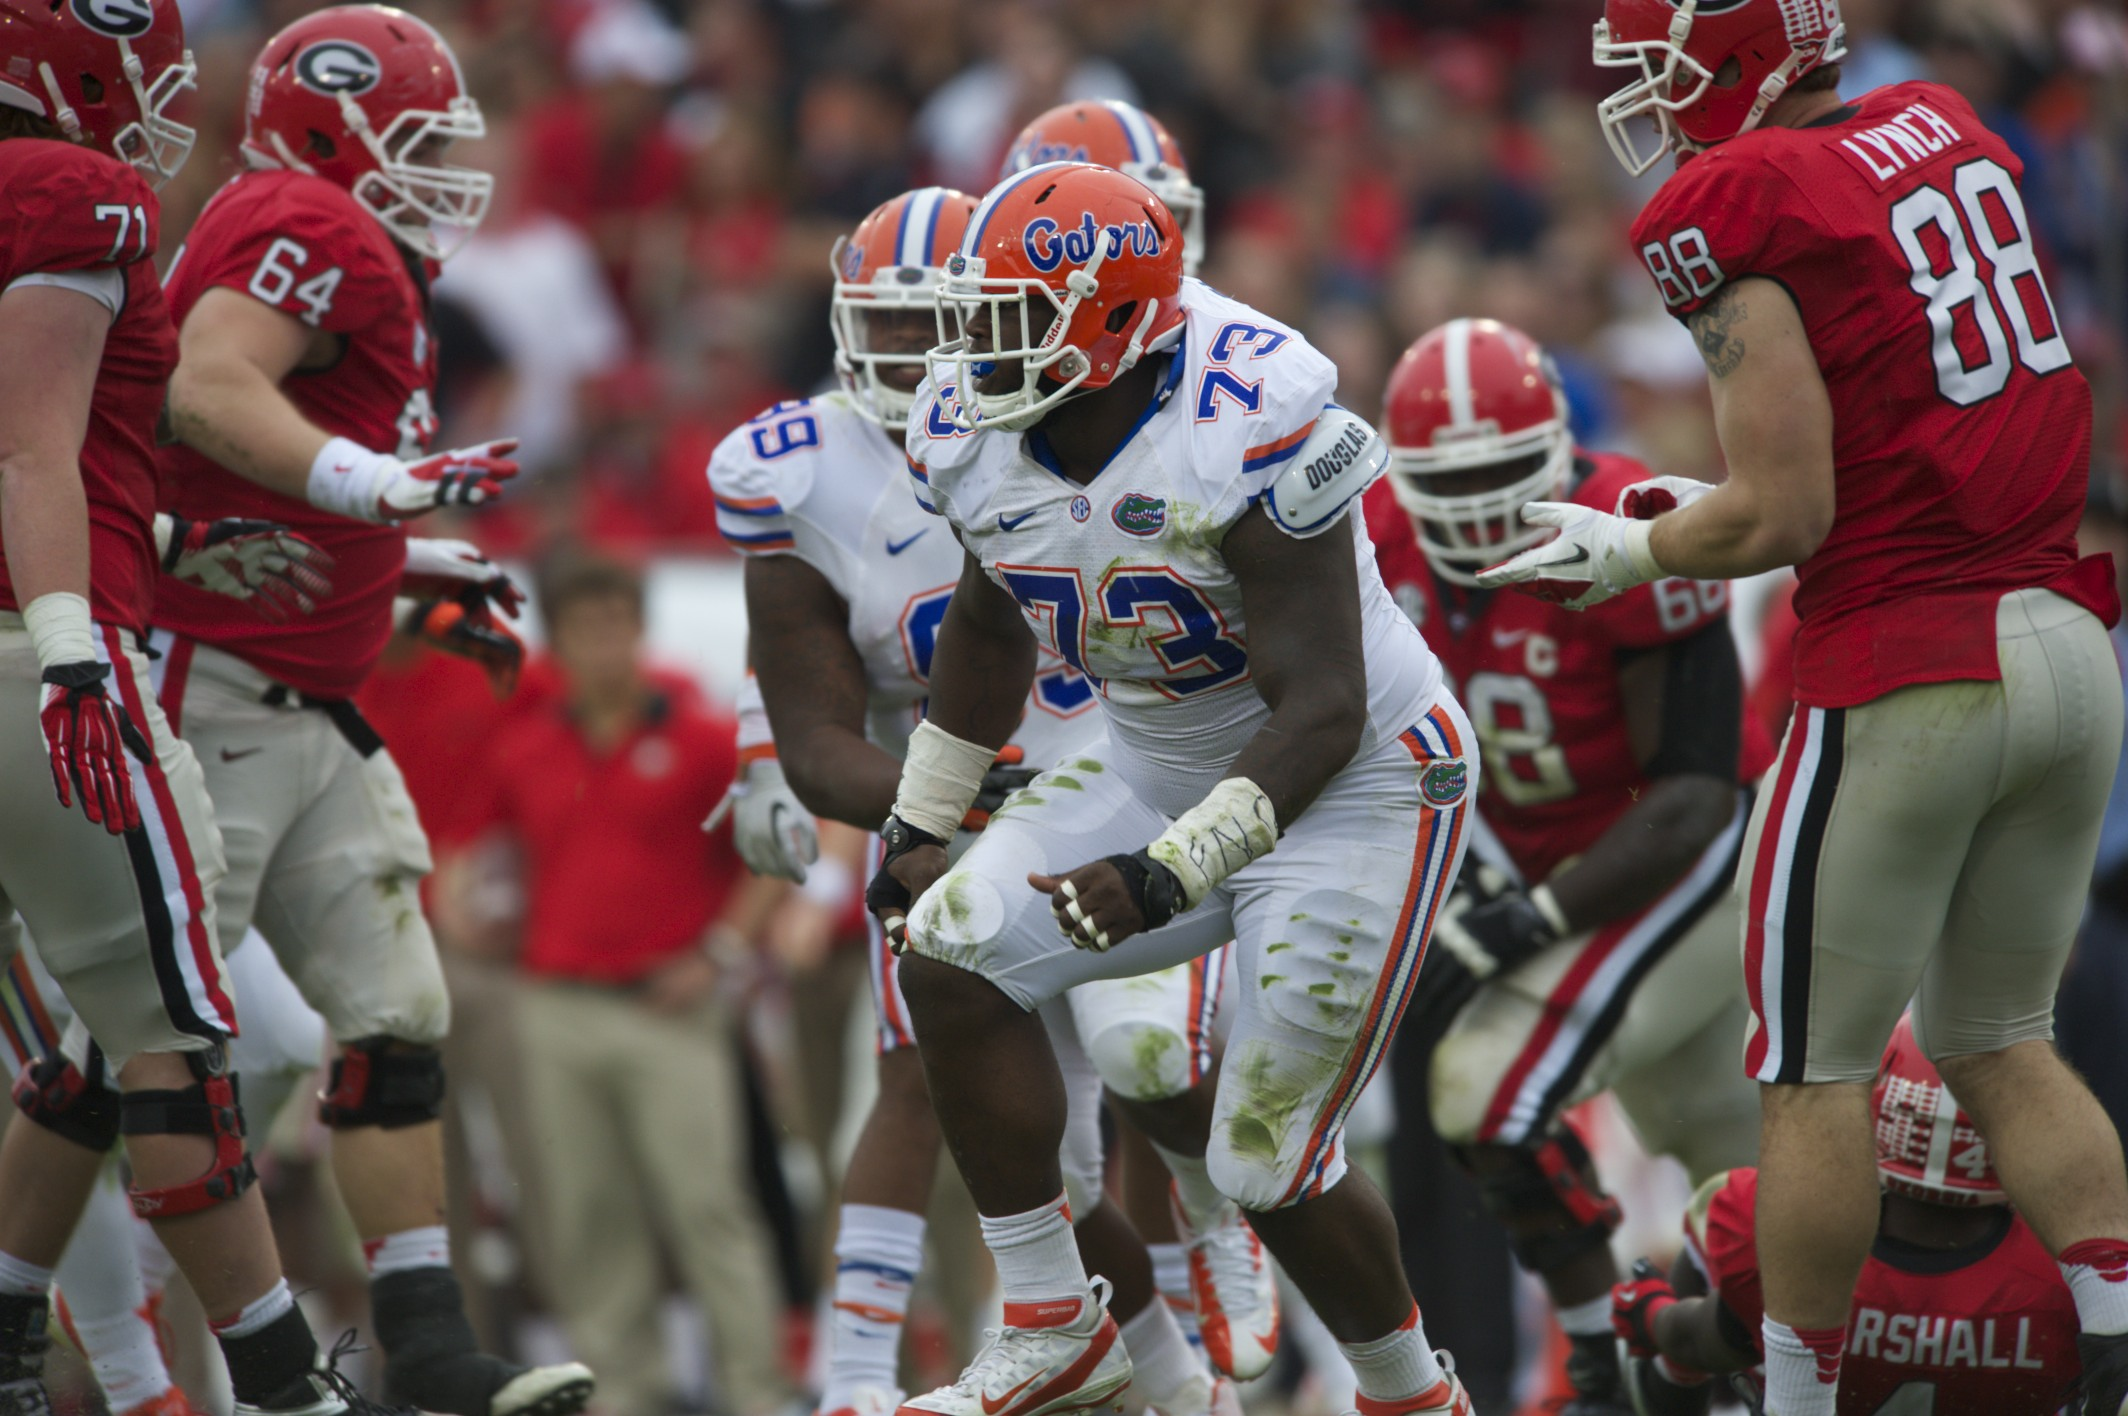 Defensive lineman Sharrif Floyd makes a crucial tackle behind the line of scrimmage for the Florida Gators in Saturday's game against the Georgia Bulldogs.